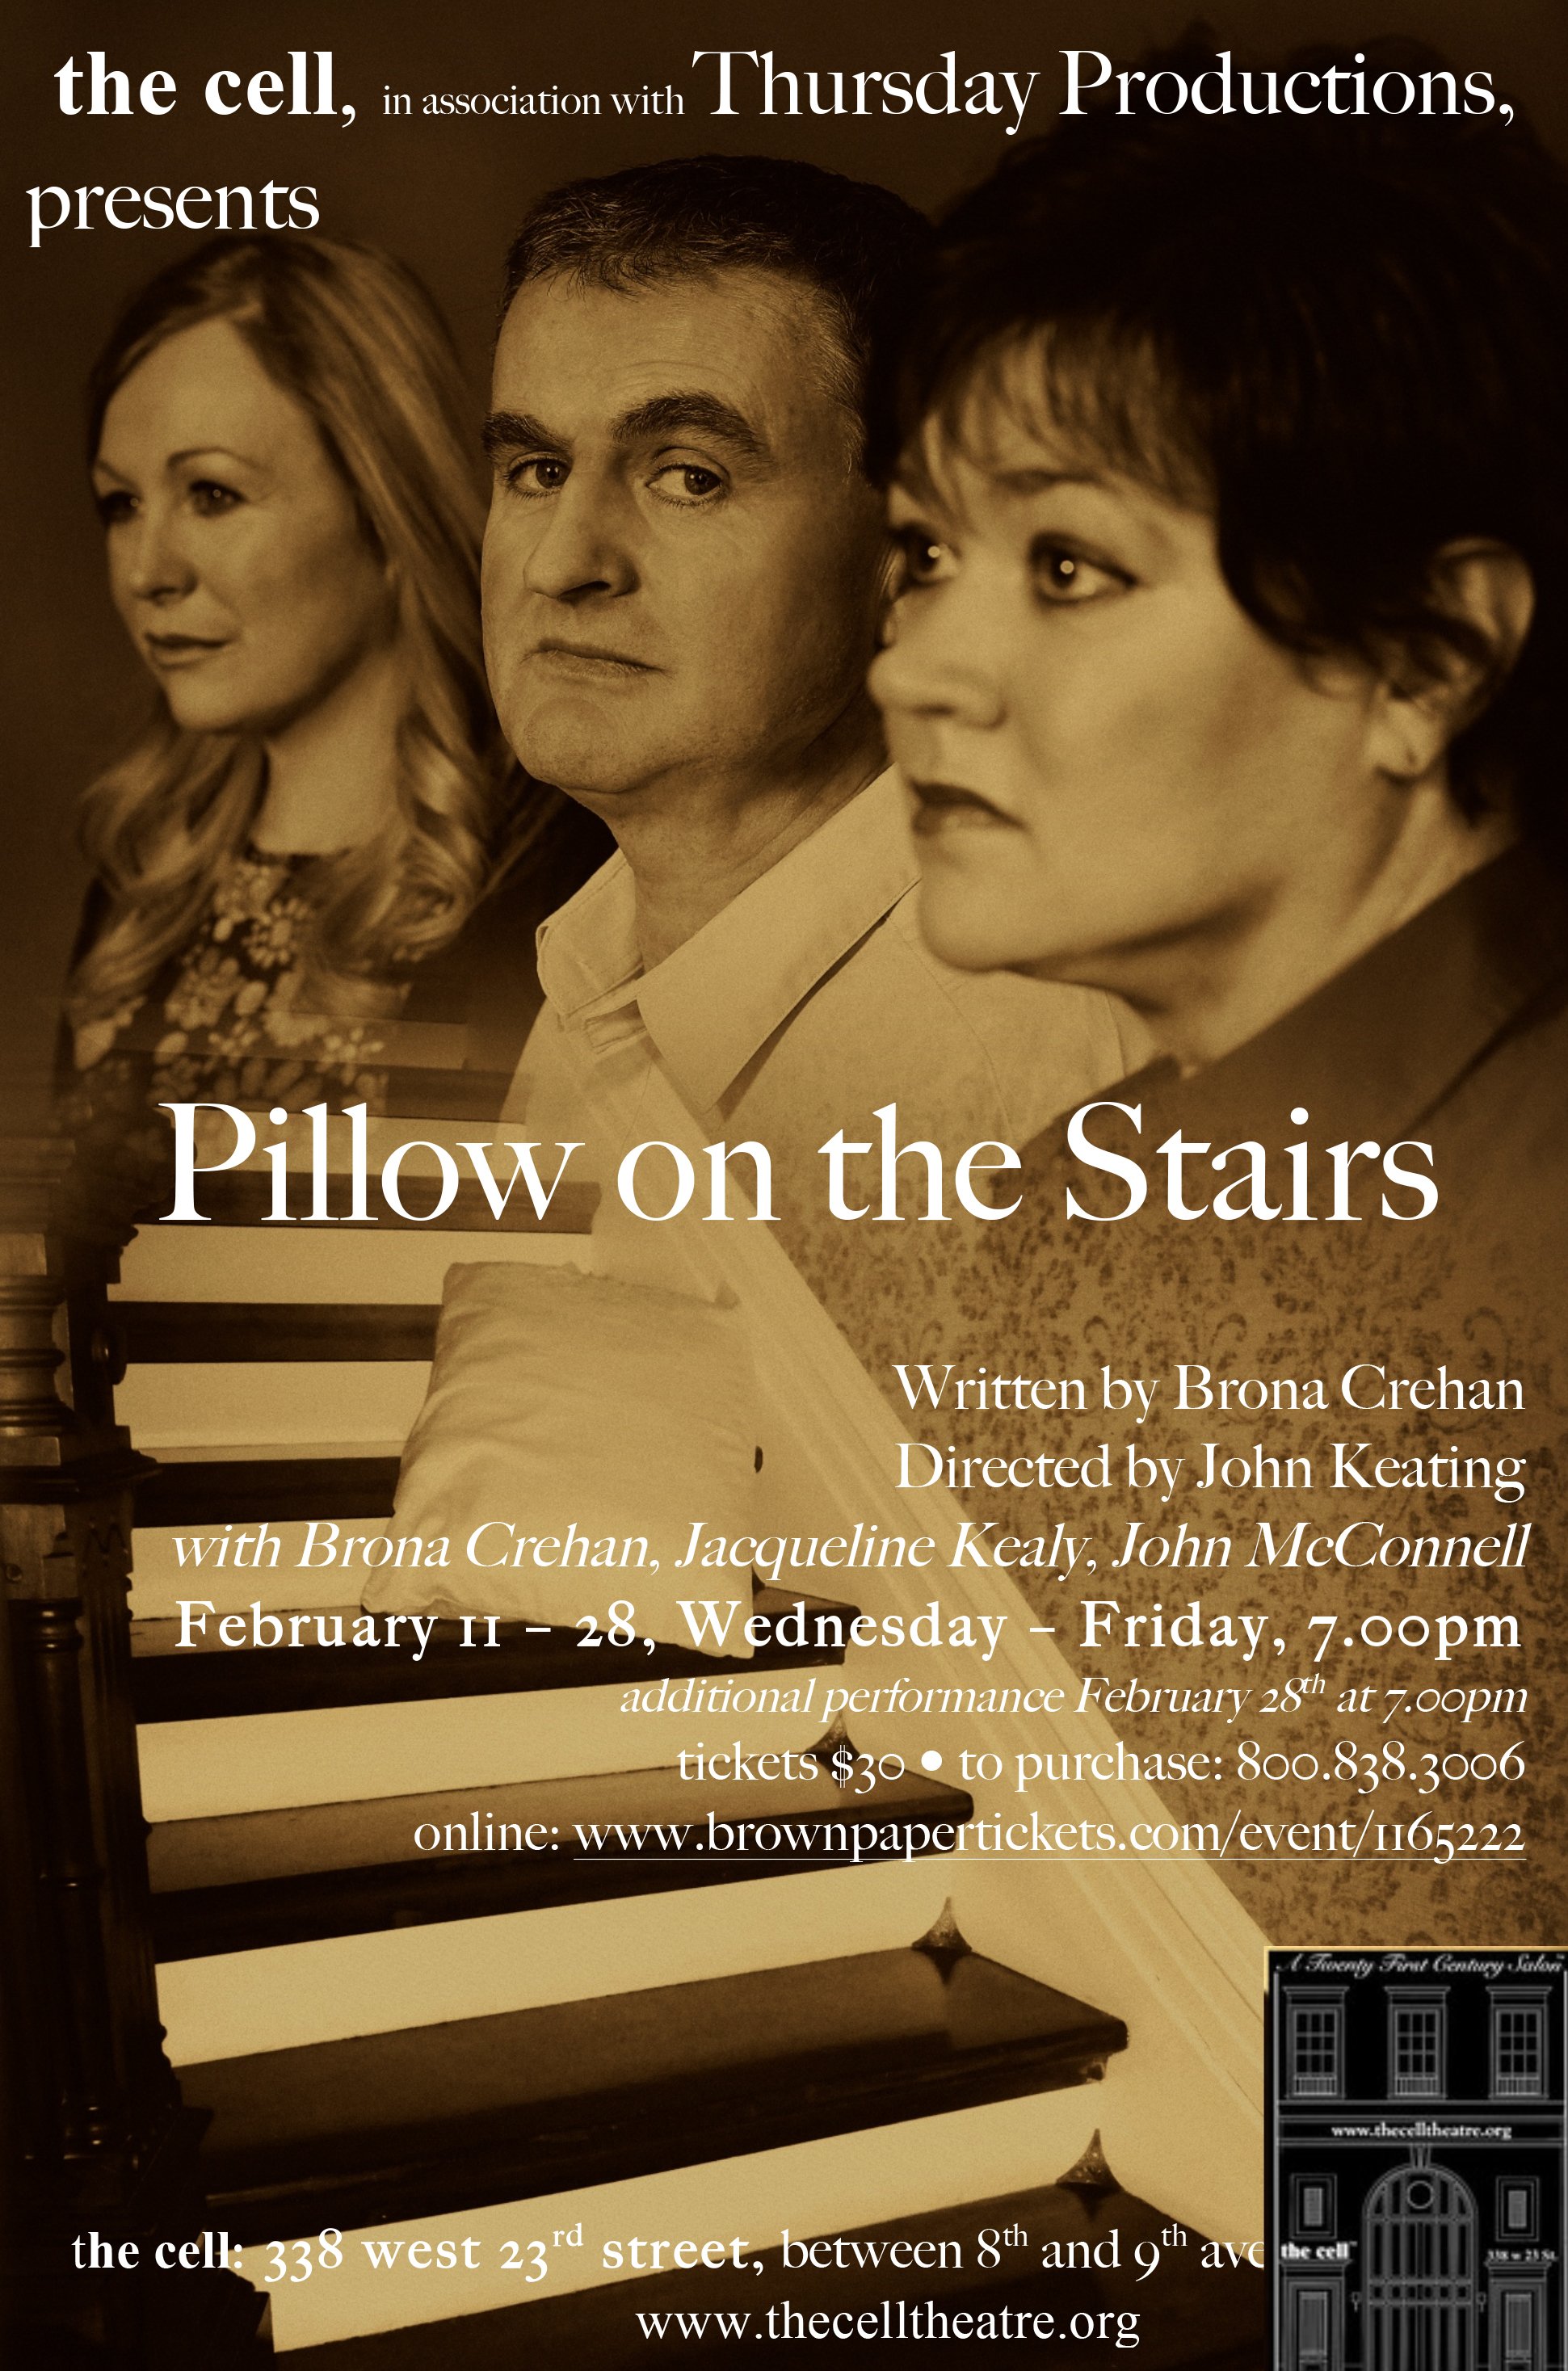 pregnancy sets off a chain of events in the lives of three people in PILLOW ON THE STAIRS.  What follows creates a web of secrets and denials that binds this trio of ordinary, flawed individuals together for a lifetime. Every decision has lasting consequences in this intimate story about love, loyalty, betrayal, and trust.  PILLOW ON THE STAIRS stars John McConnell (The Weir on Broadway), Jacqueline Kealy (Eclipsed at Irish Rep) and Brona Crehan. The production team includes:   John Keating (Production Director)  ,  Gertjan Houben  (lighting), Florian Staab (sound design) and Mackenzie Meeks (stage manager).  PILLOW ON THE STAIRS runs February 11 - 28, Wednesday - Friday at 7pm with an additional performance on Feb 28 at 7pm.